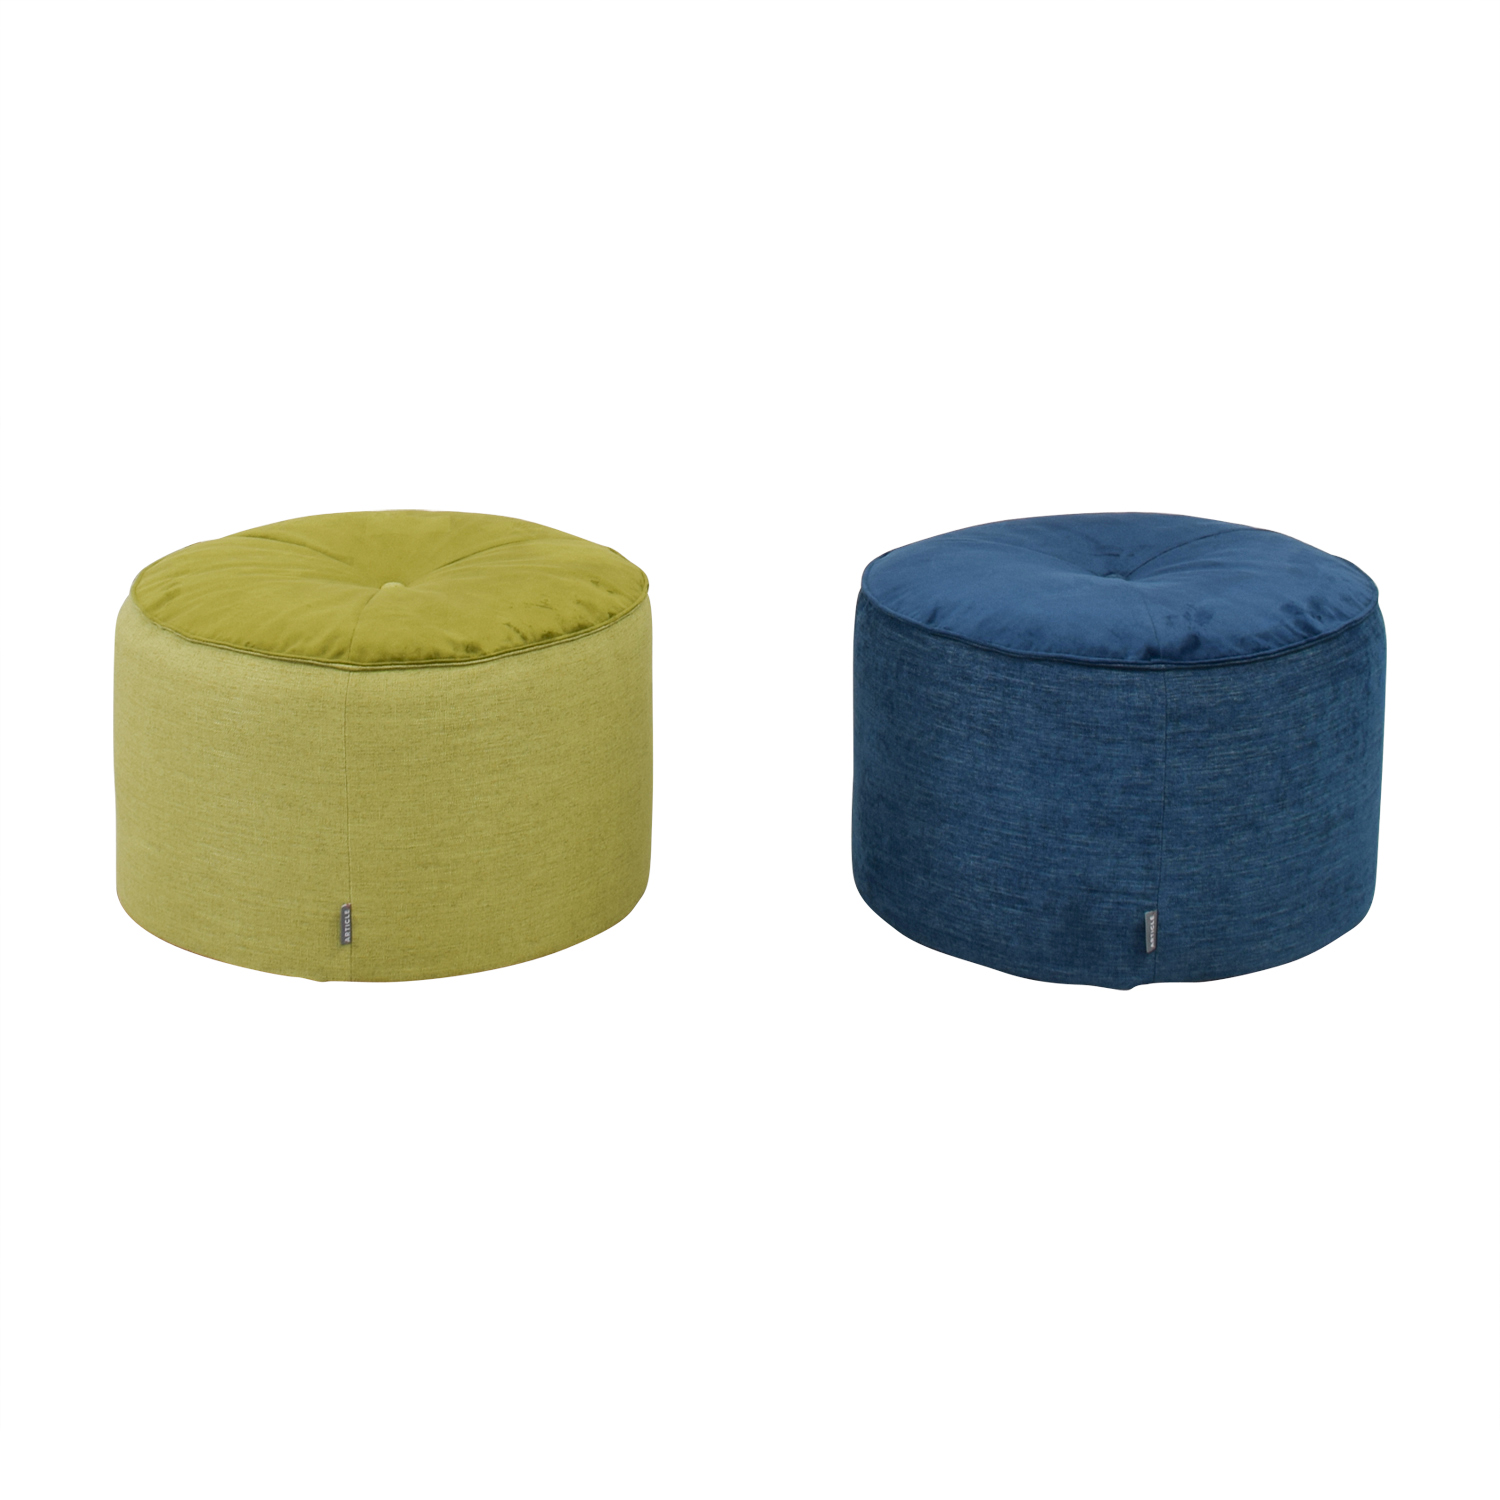 Article Green and Blue Velvet and Tweed Round Pouf Ottomans / Ottomans